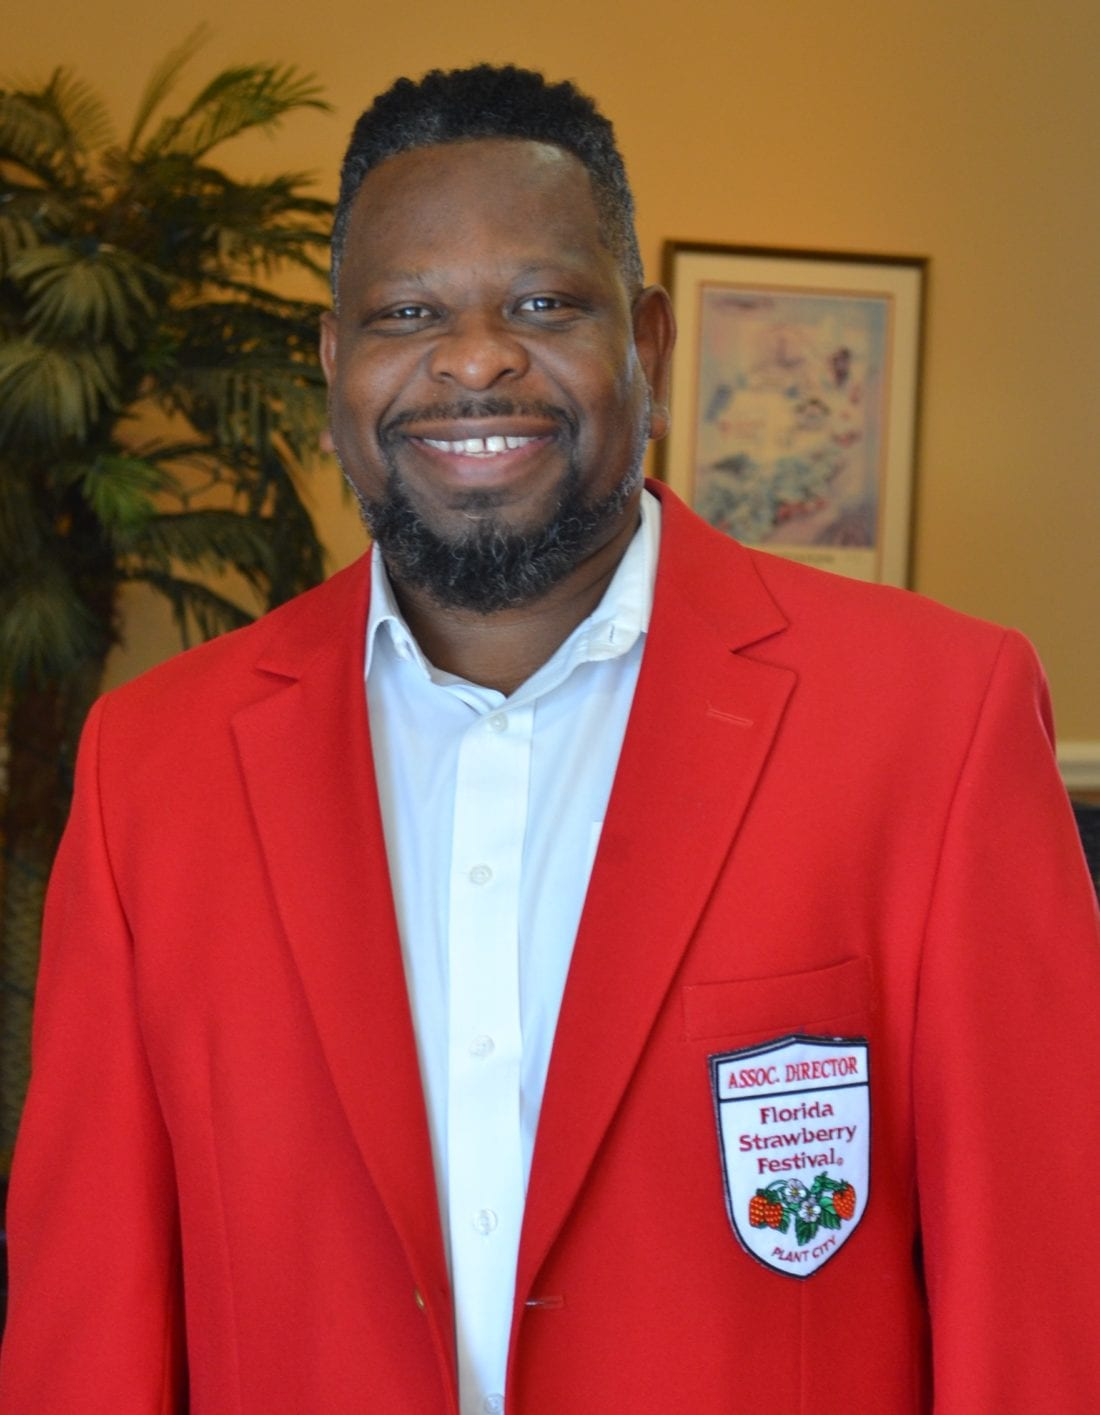 """My perfect vision would be seeing first-time attendee families arrive at the festival. Getting to see their initial reactions to the attractions, entertainment, vendors, rides and simply being able to watch them enjoy some family time at the 2020 event would be pretty perfect."" — Pastor Calvin ""Pee Wee"" Callins, Associate Director"